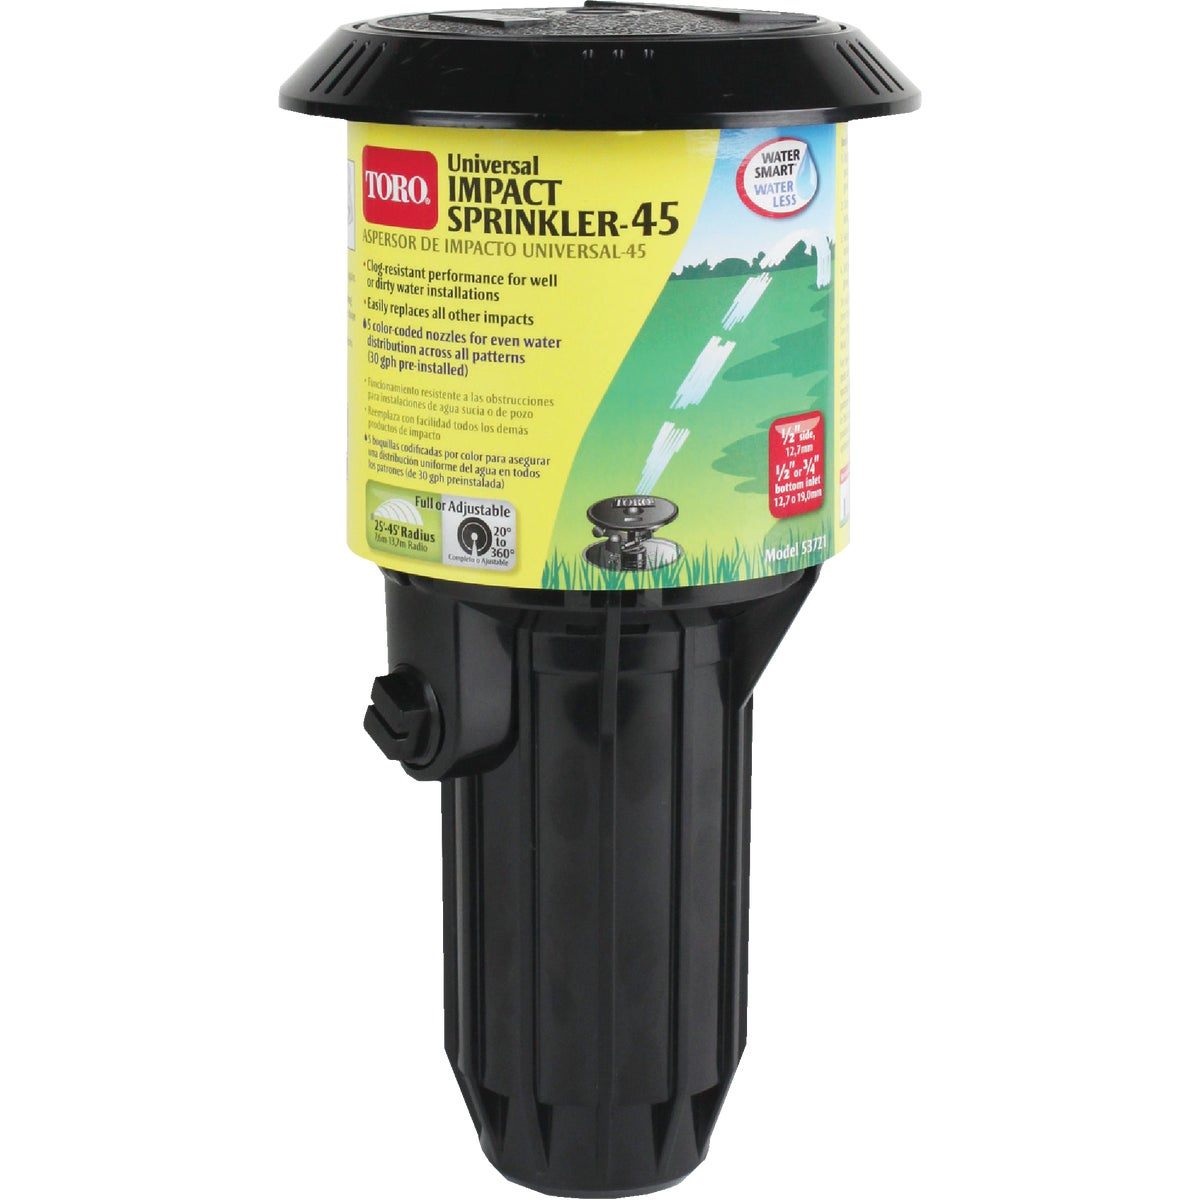 POP-UP IMPULSE SPRINKLER - 53721 by Toro/elect Appl Ordr